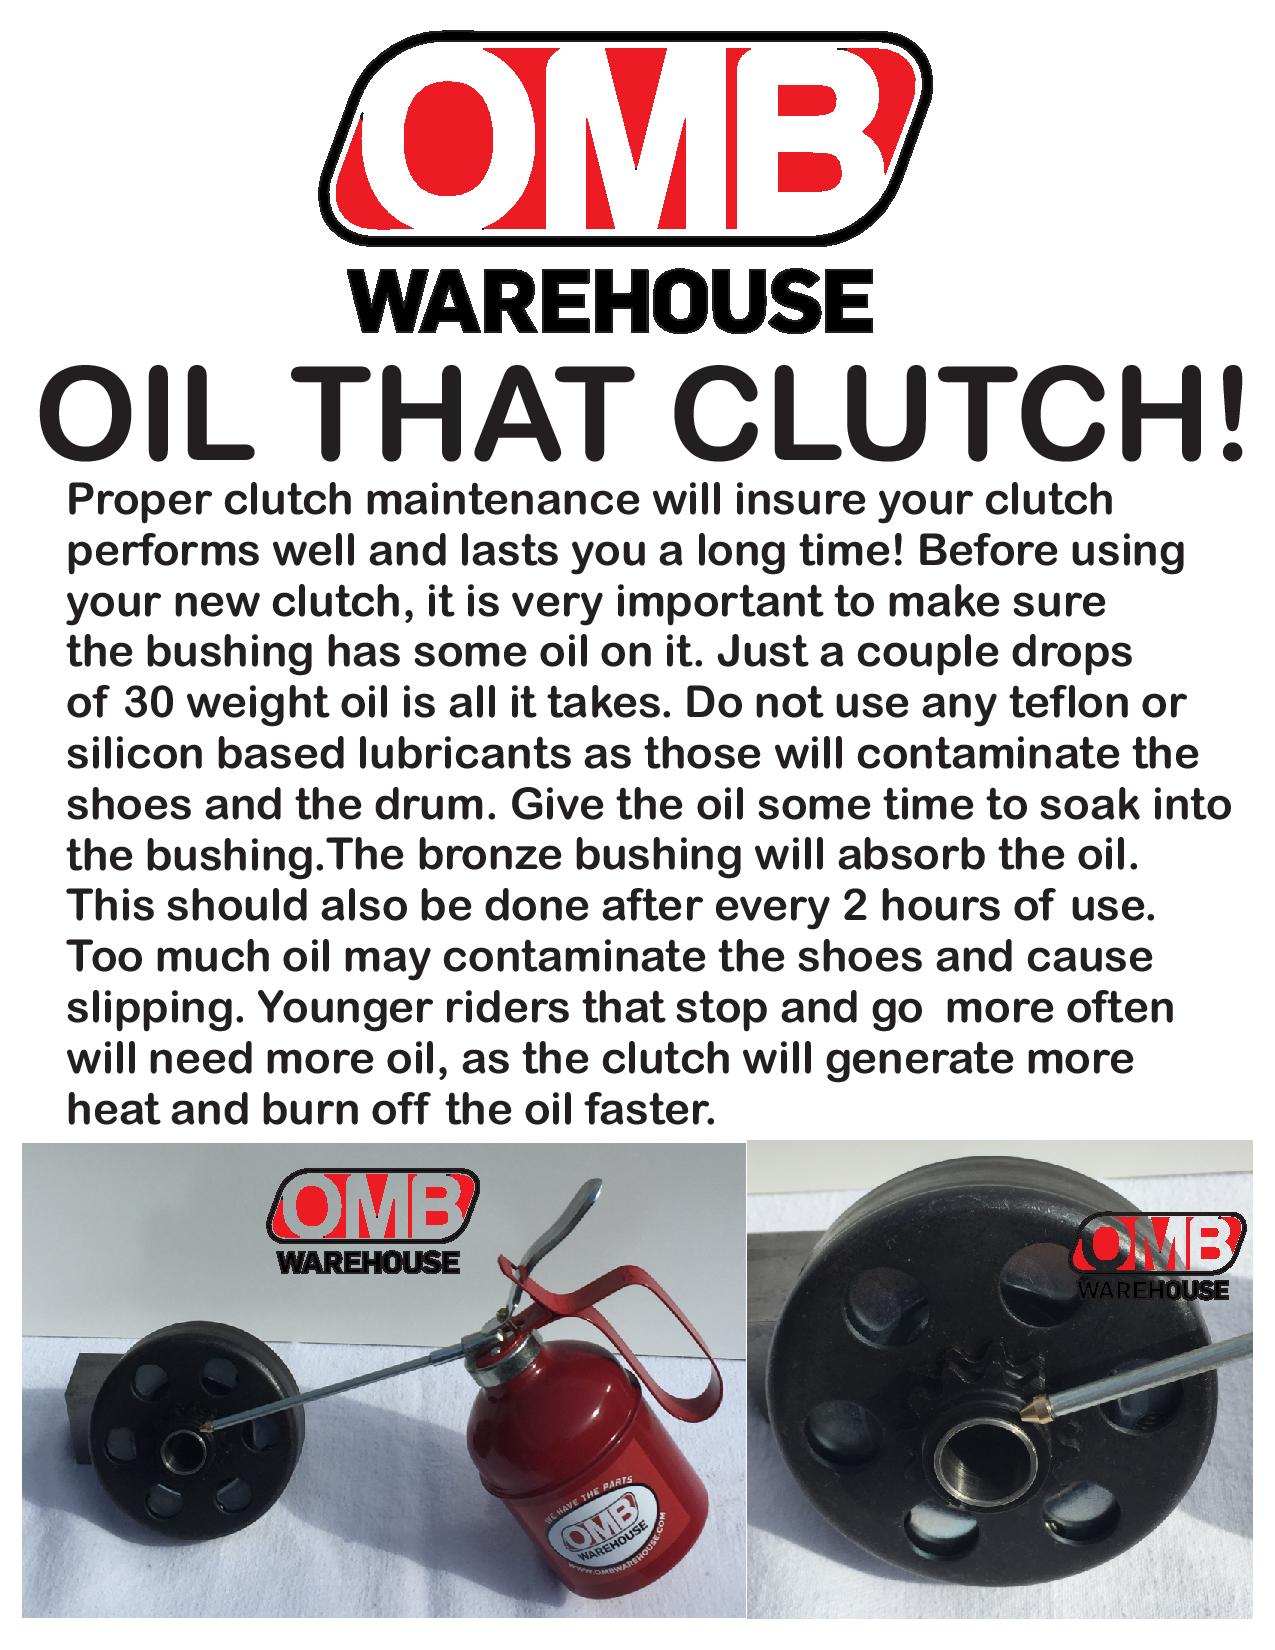 OMBW_OIL_that_clutch-page-001.jpg